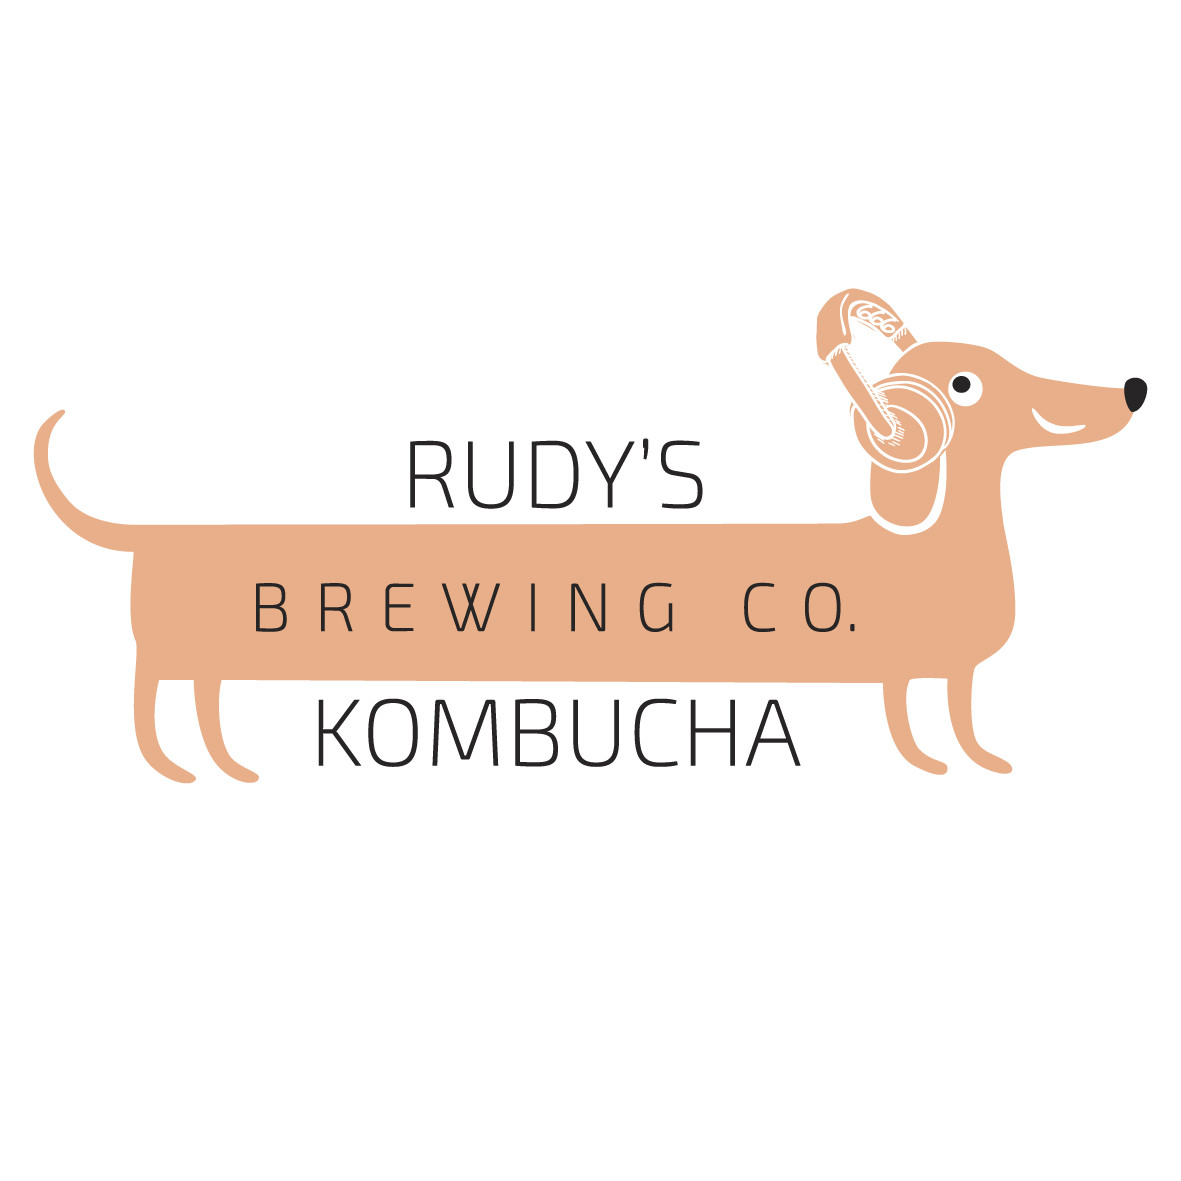 Rudys Brewing Co